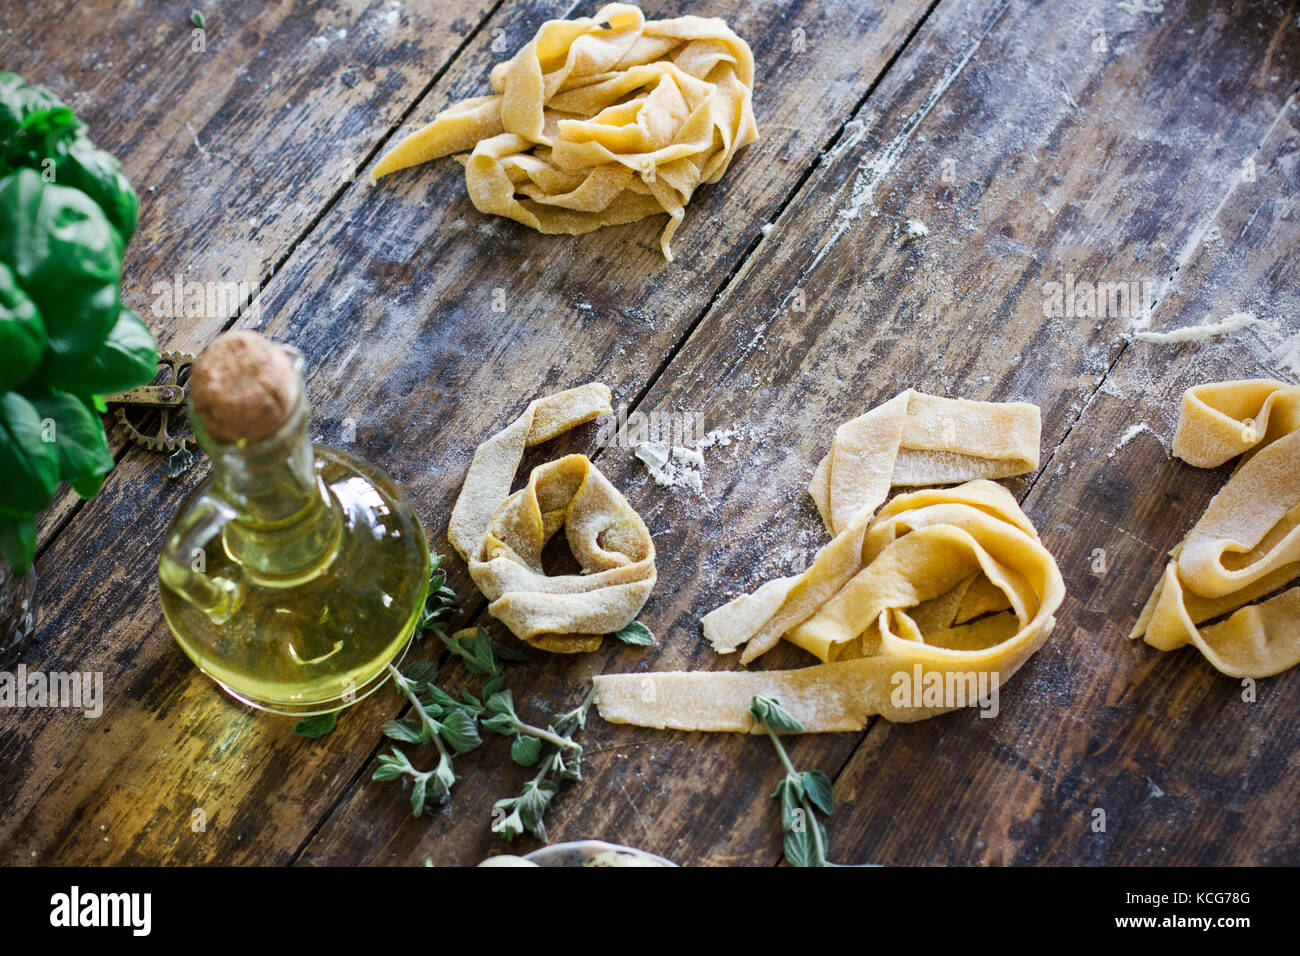 Raw homemade pasta on wooden table - Stock Image